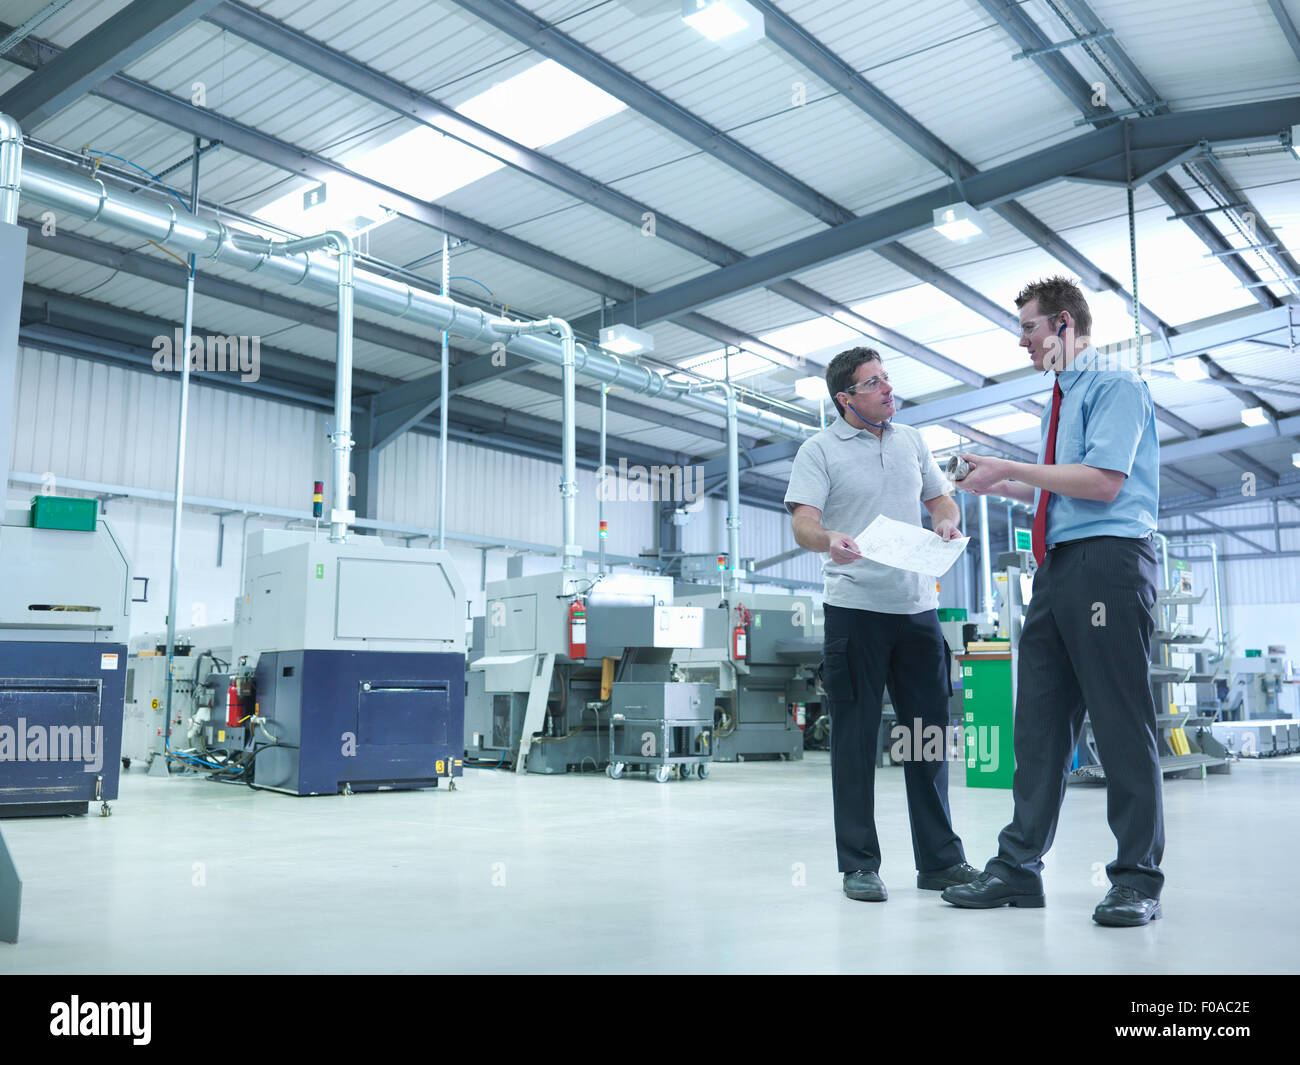 Engineer and apprentice discussing drawings in factory - Stock Image